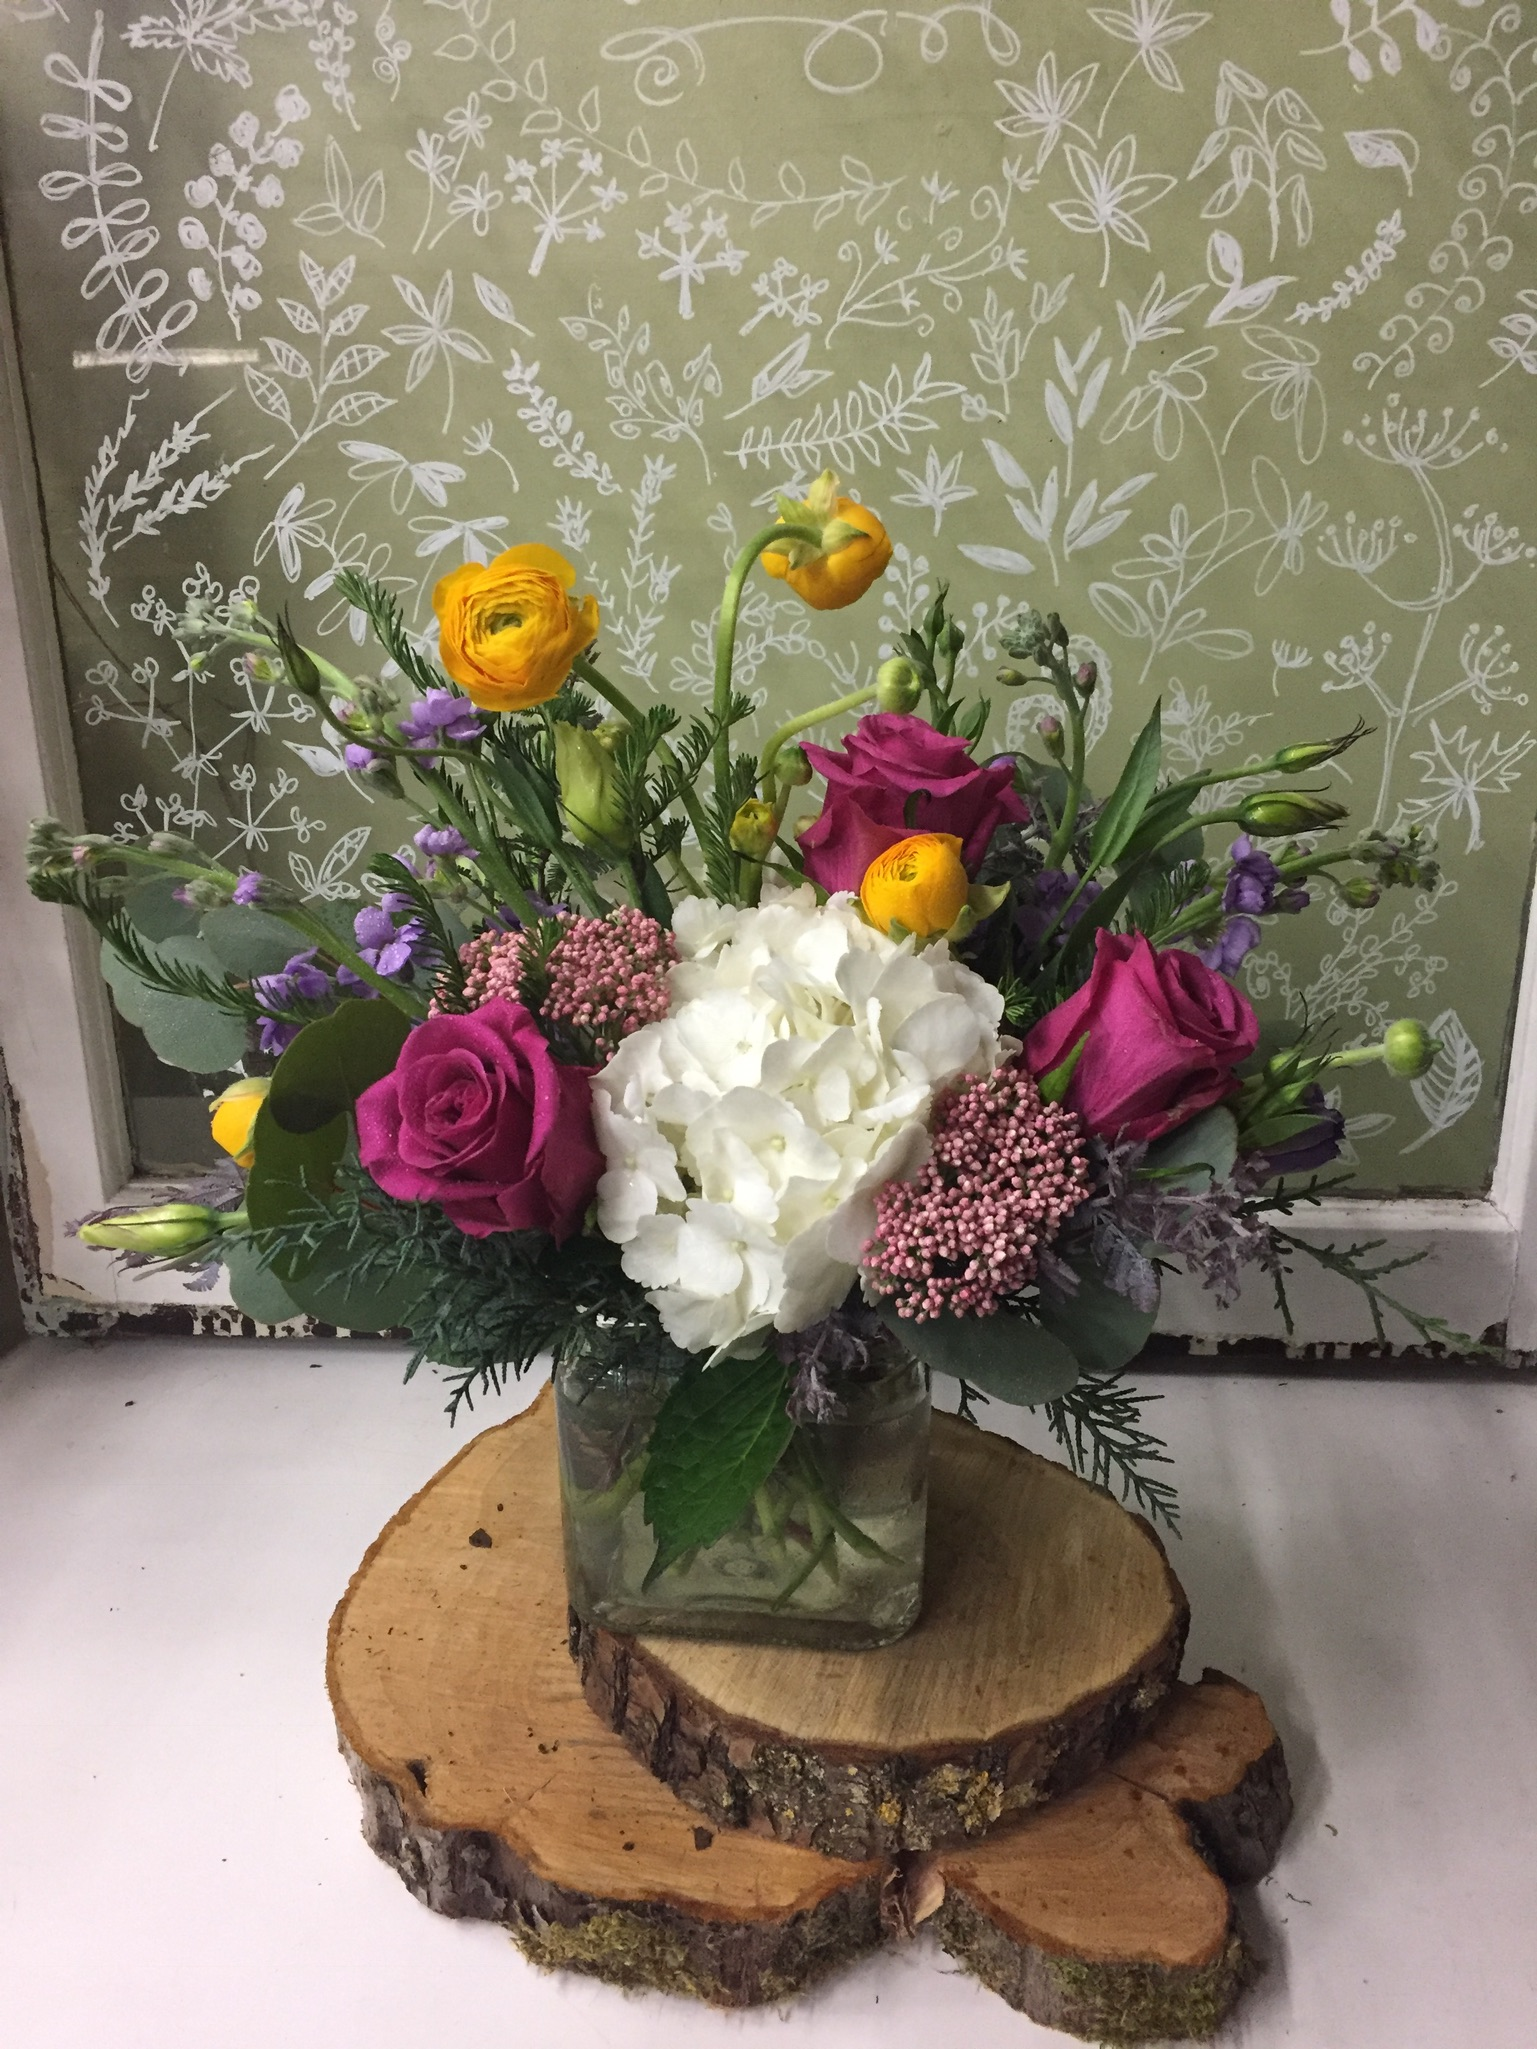 8. Classic with hydrangea, rose and ranunculus